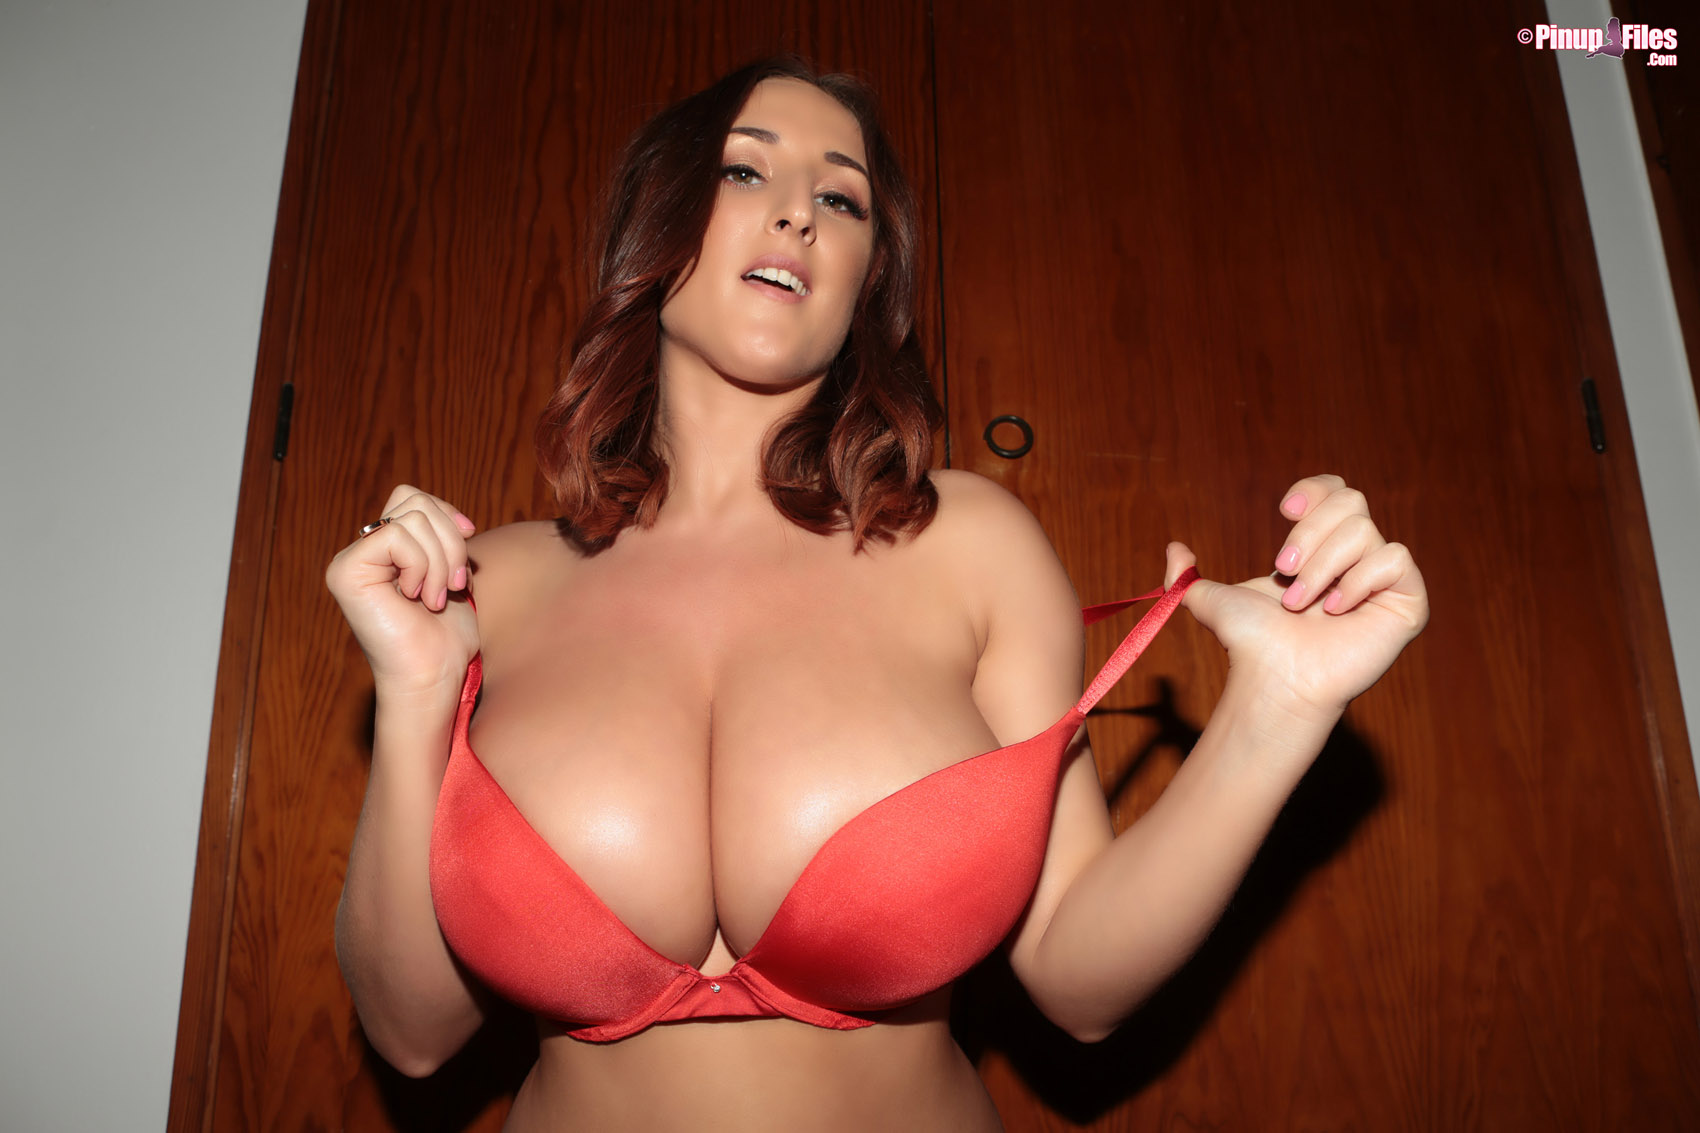 ... Stacey Poole Red Lingerie Tits and Ass Pinupfiles